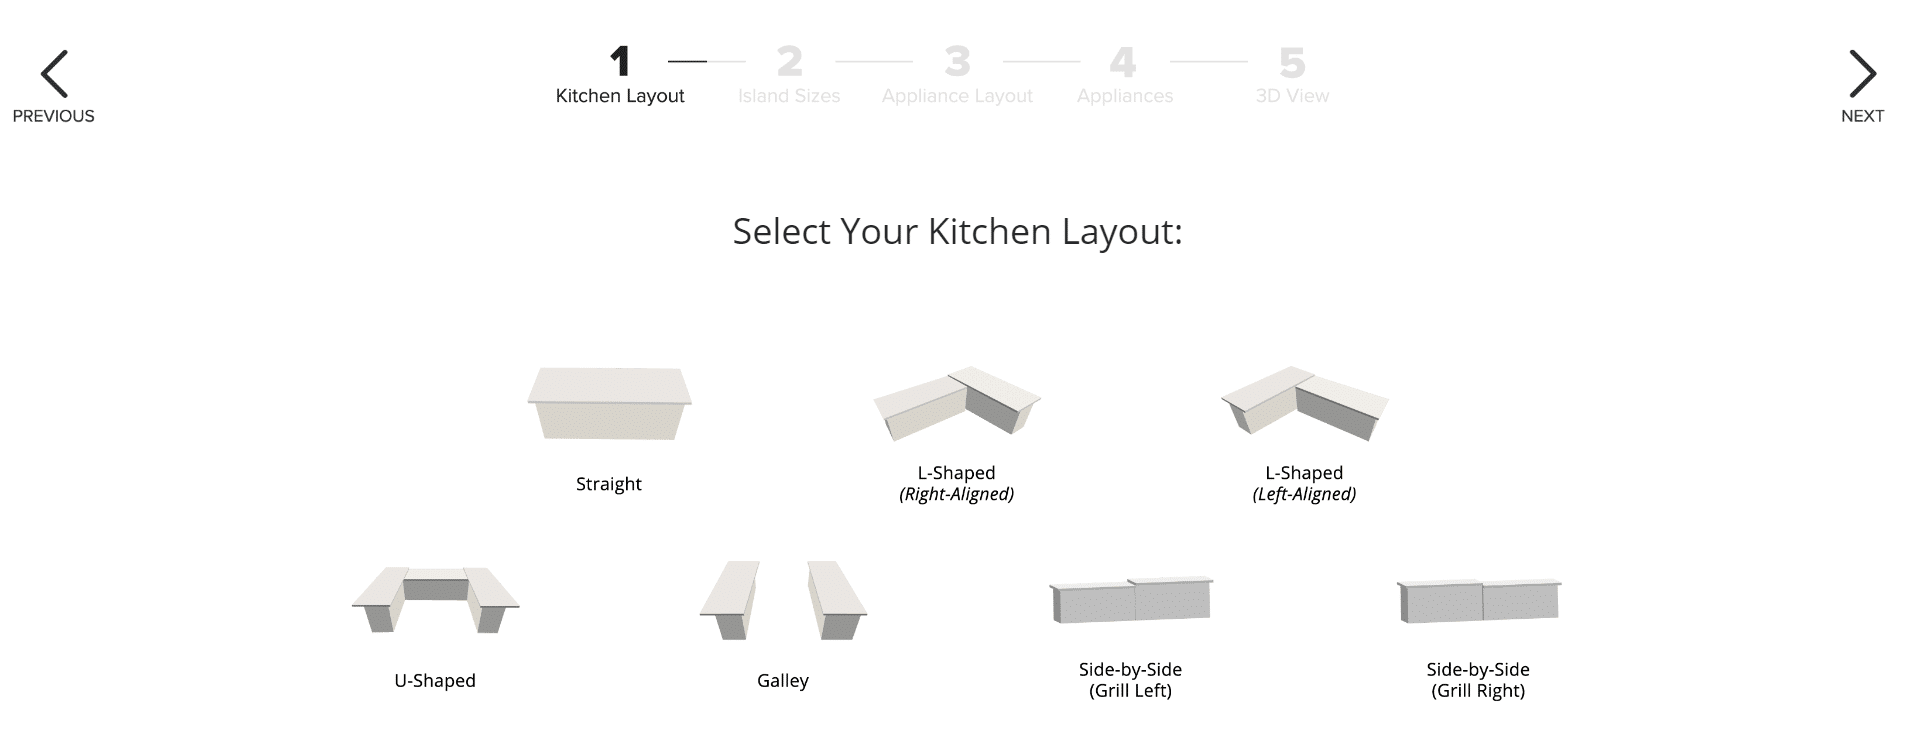 Create Outdoor Kitchen Designs In 5 Easy Steps Coyote Outdoor Living